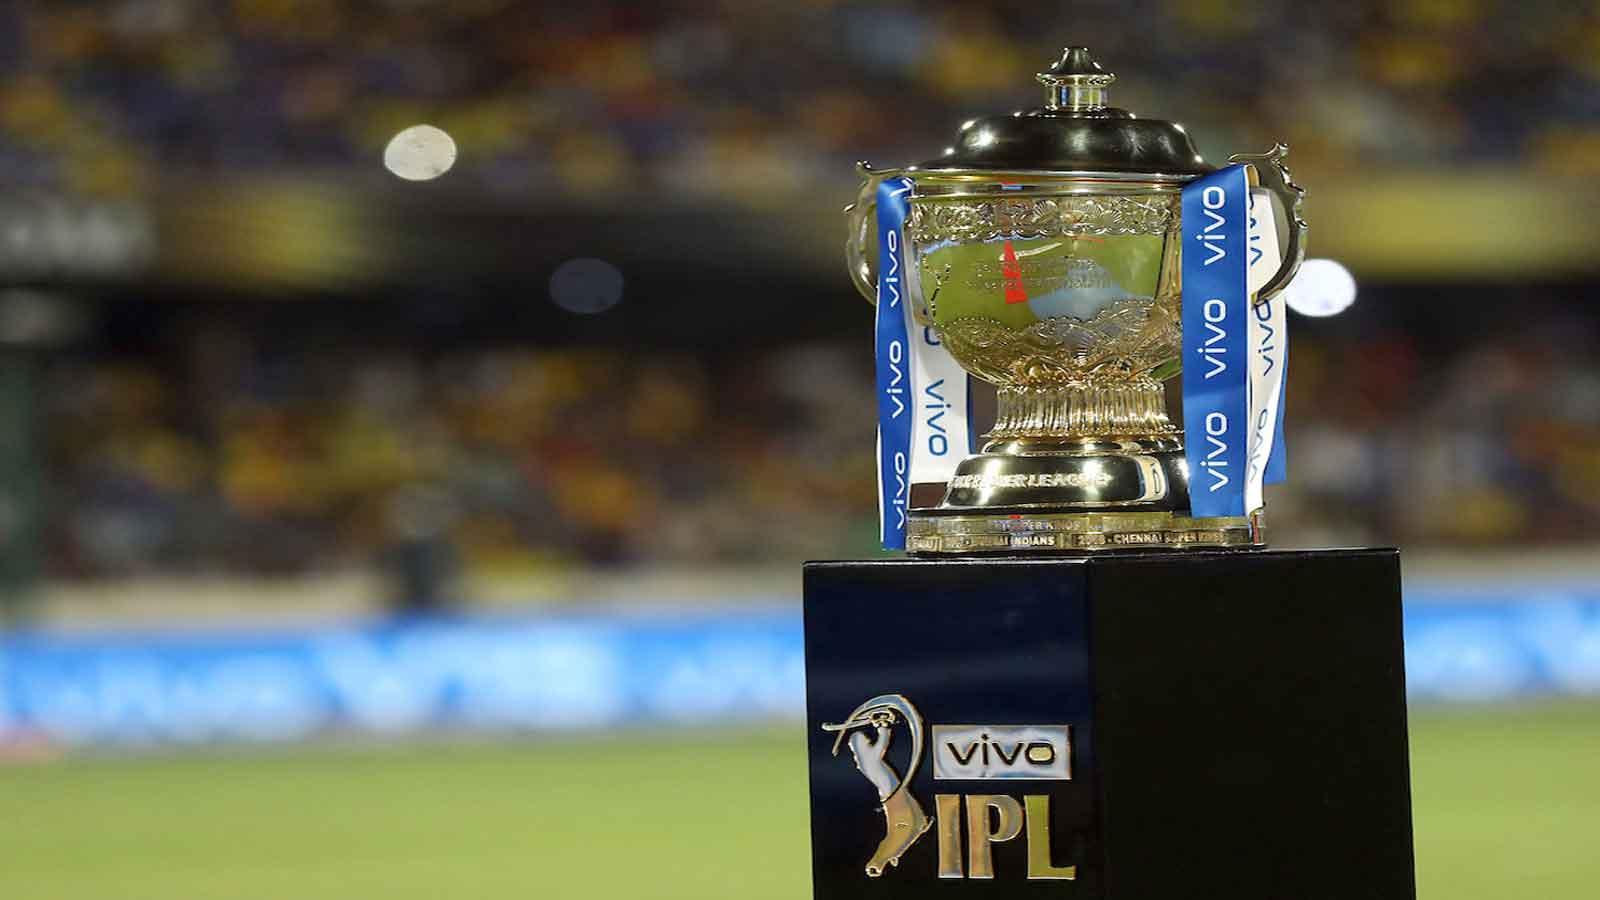 ipl-2020-panic-grips-bcci-as-vivo-likely-to-exit-as-indian-premier-leagues-title-sponsor